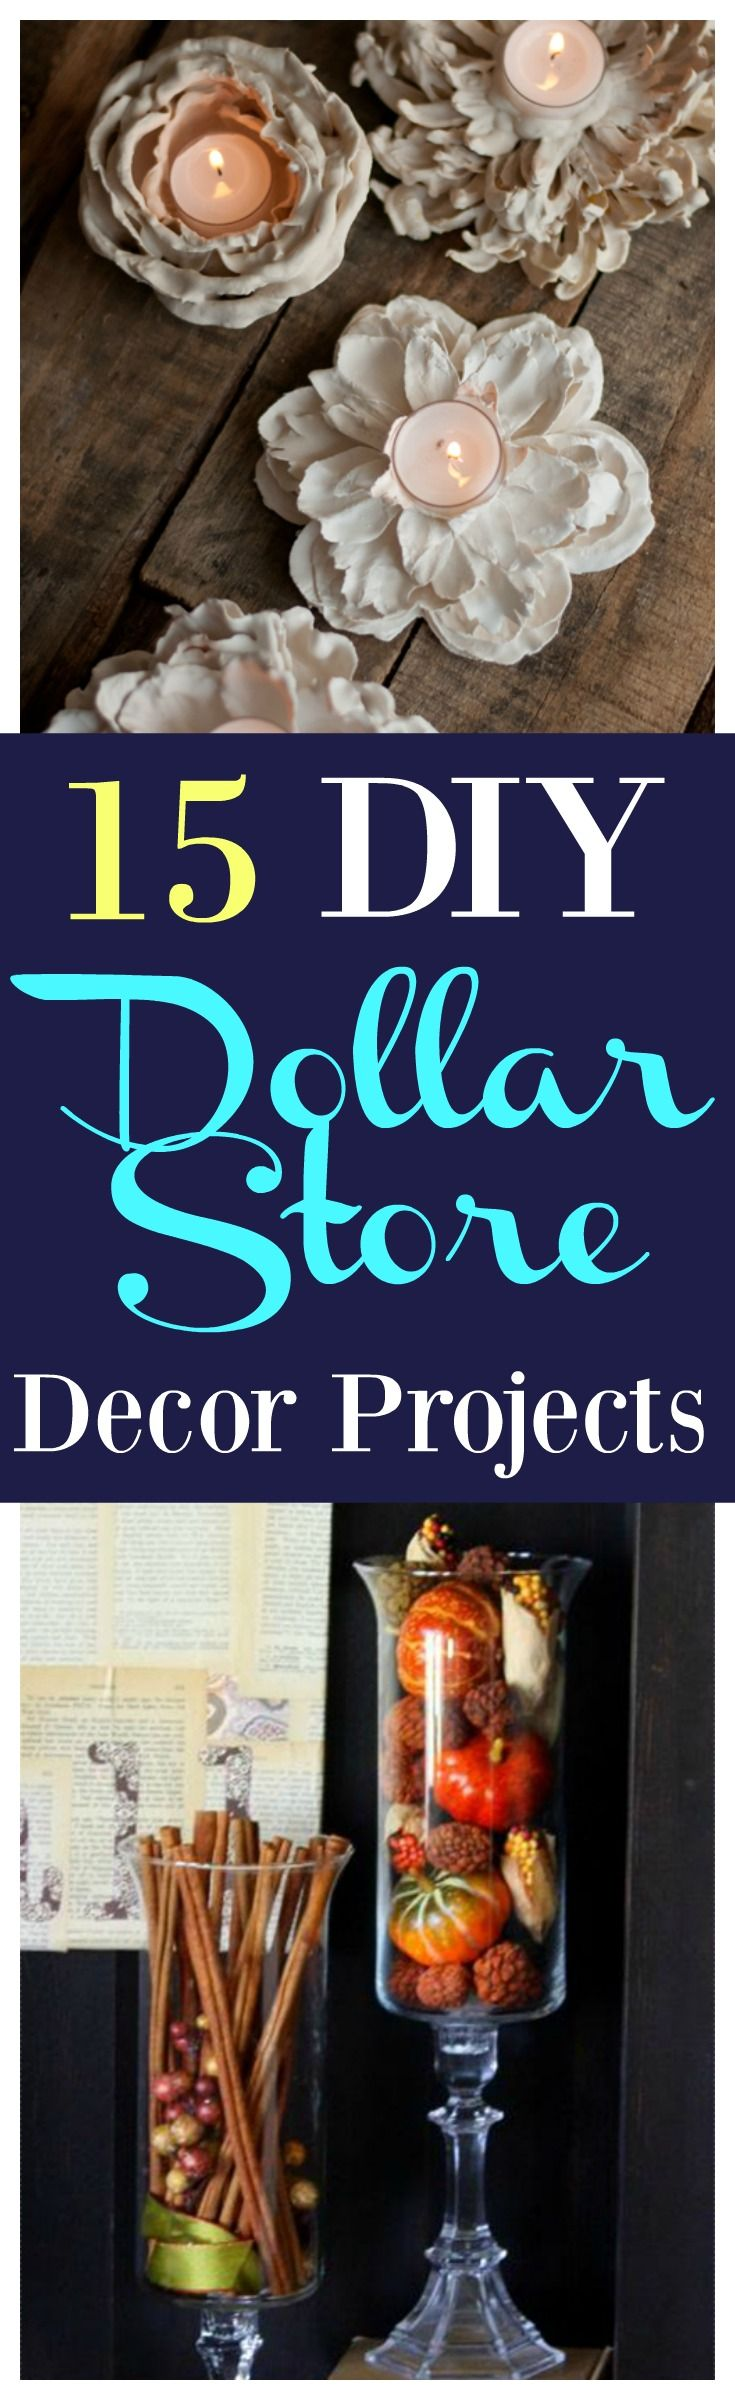 15 Gorgeous DIY Dollar Store Decor Projects That Only Look Expensive!